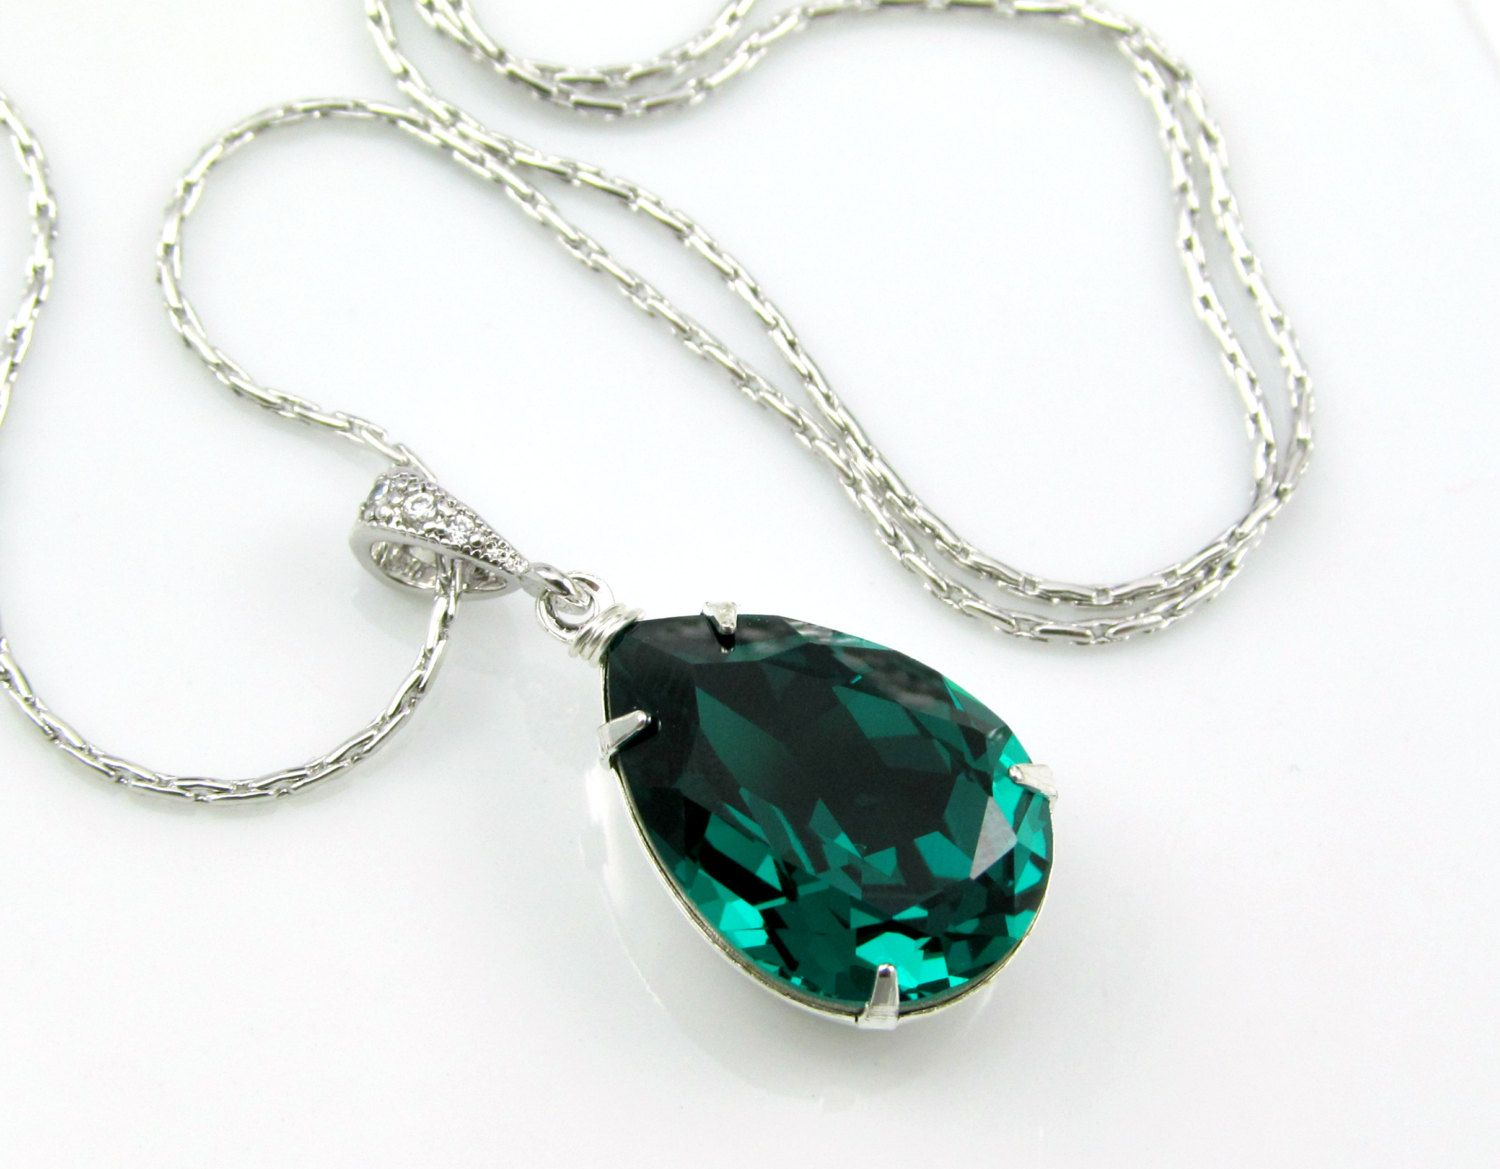 14k Yellow Gold Over Silver Natural AAA Smooth Teardrop Emerald Quartz Necklace